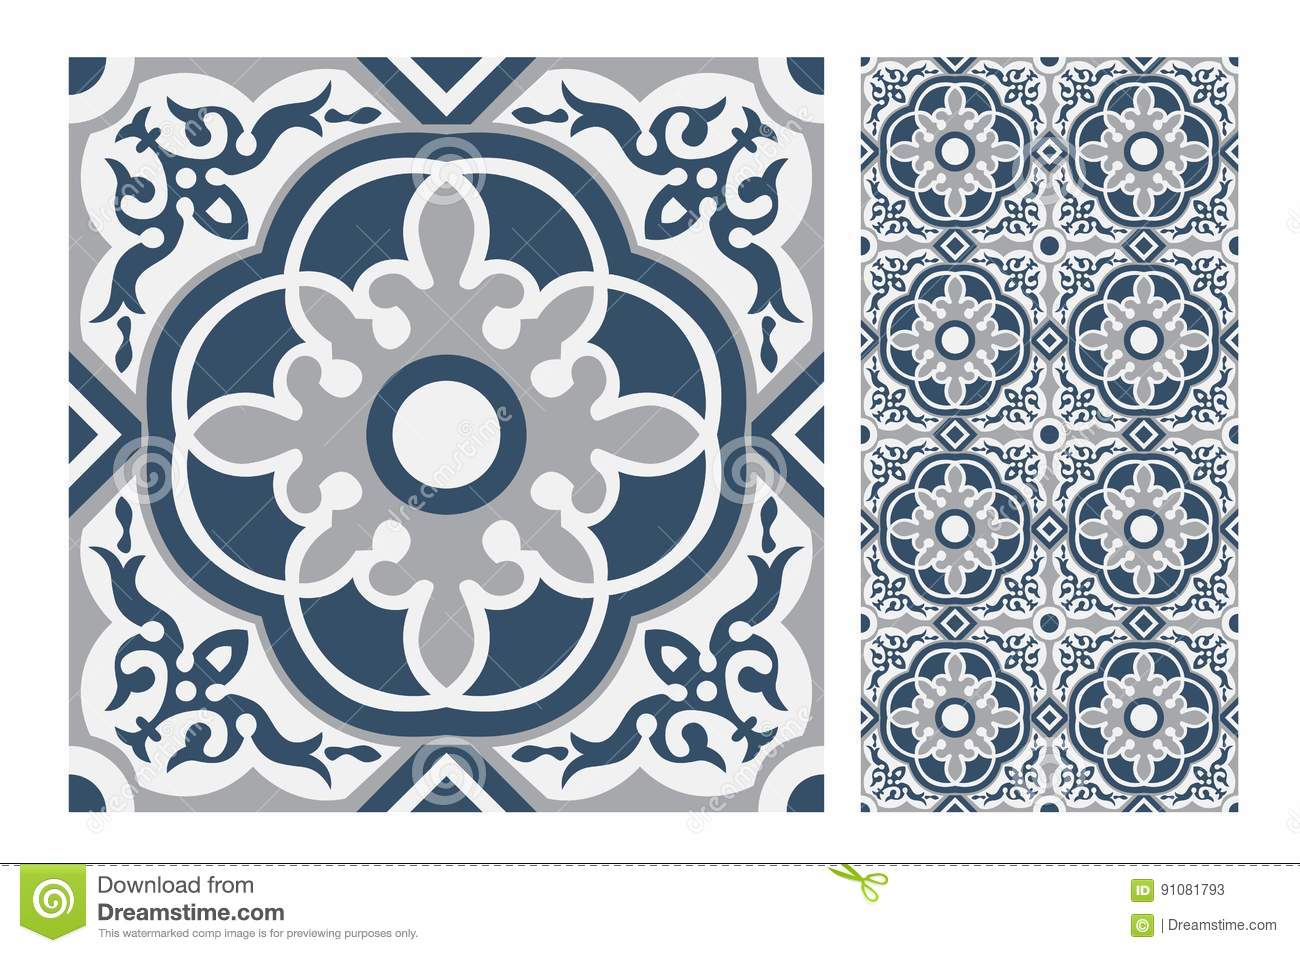 Vintage tile stock vector. Illustration of abstract, floral - 91081793